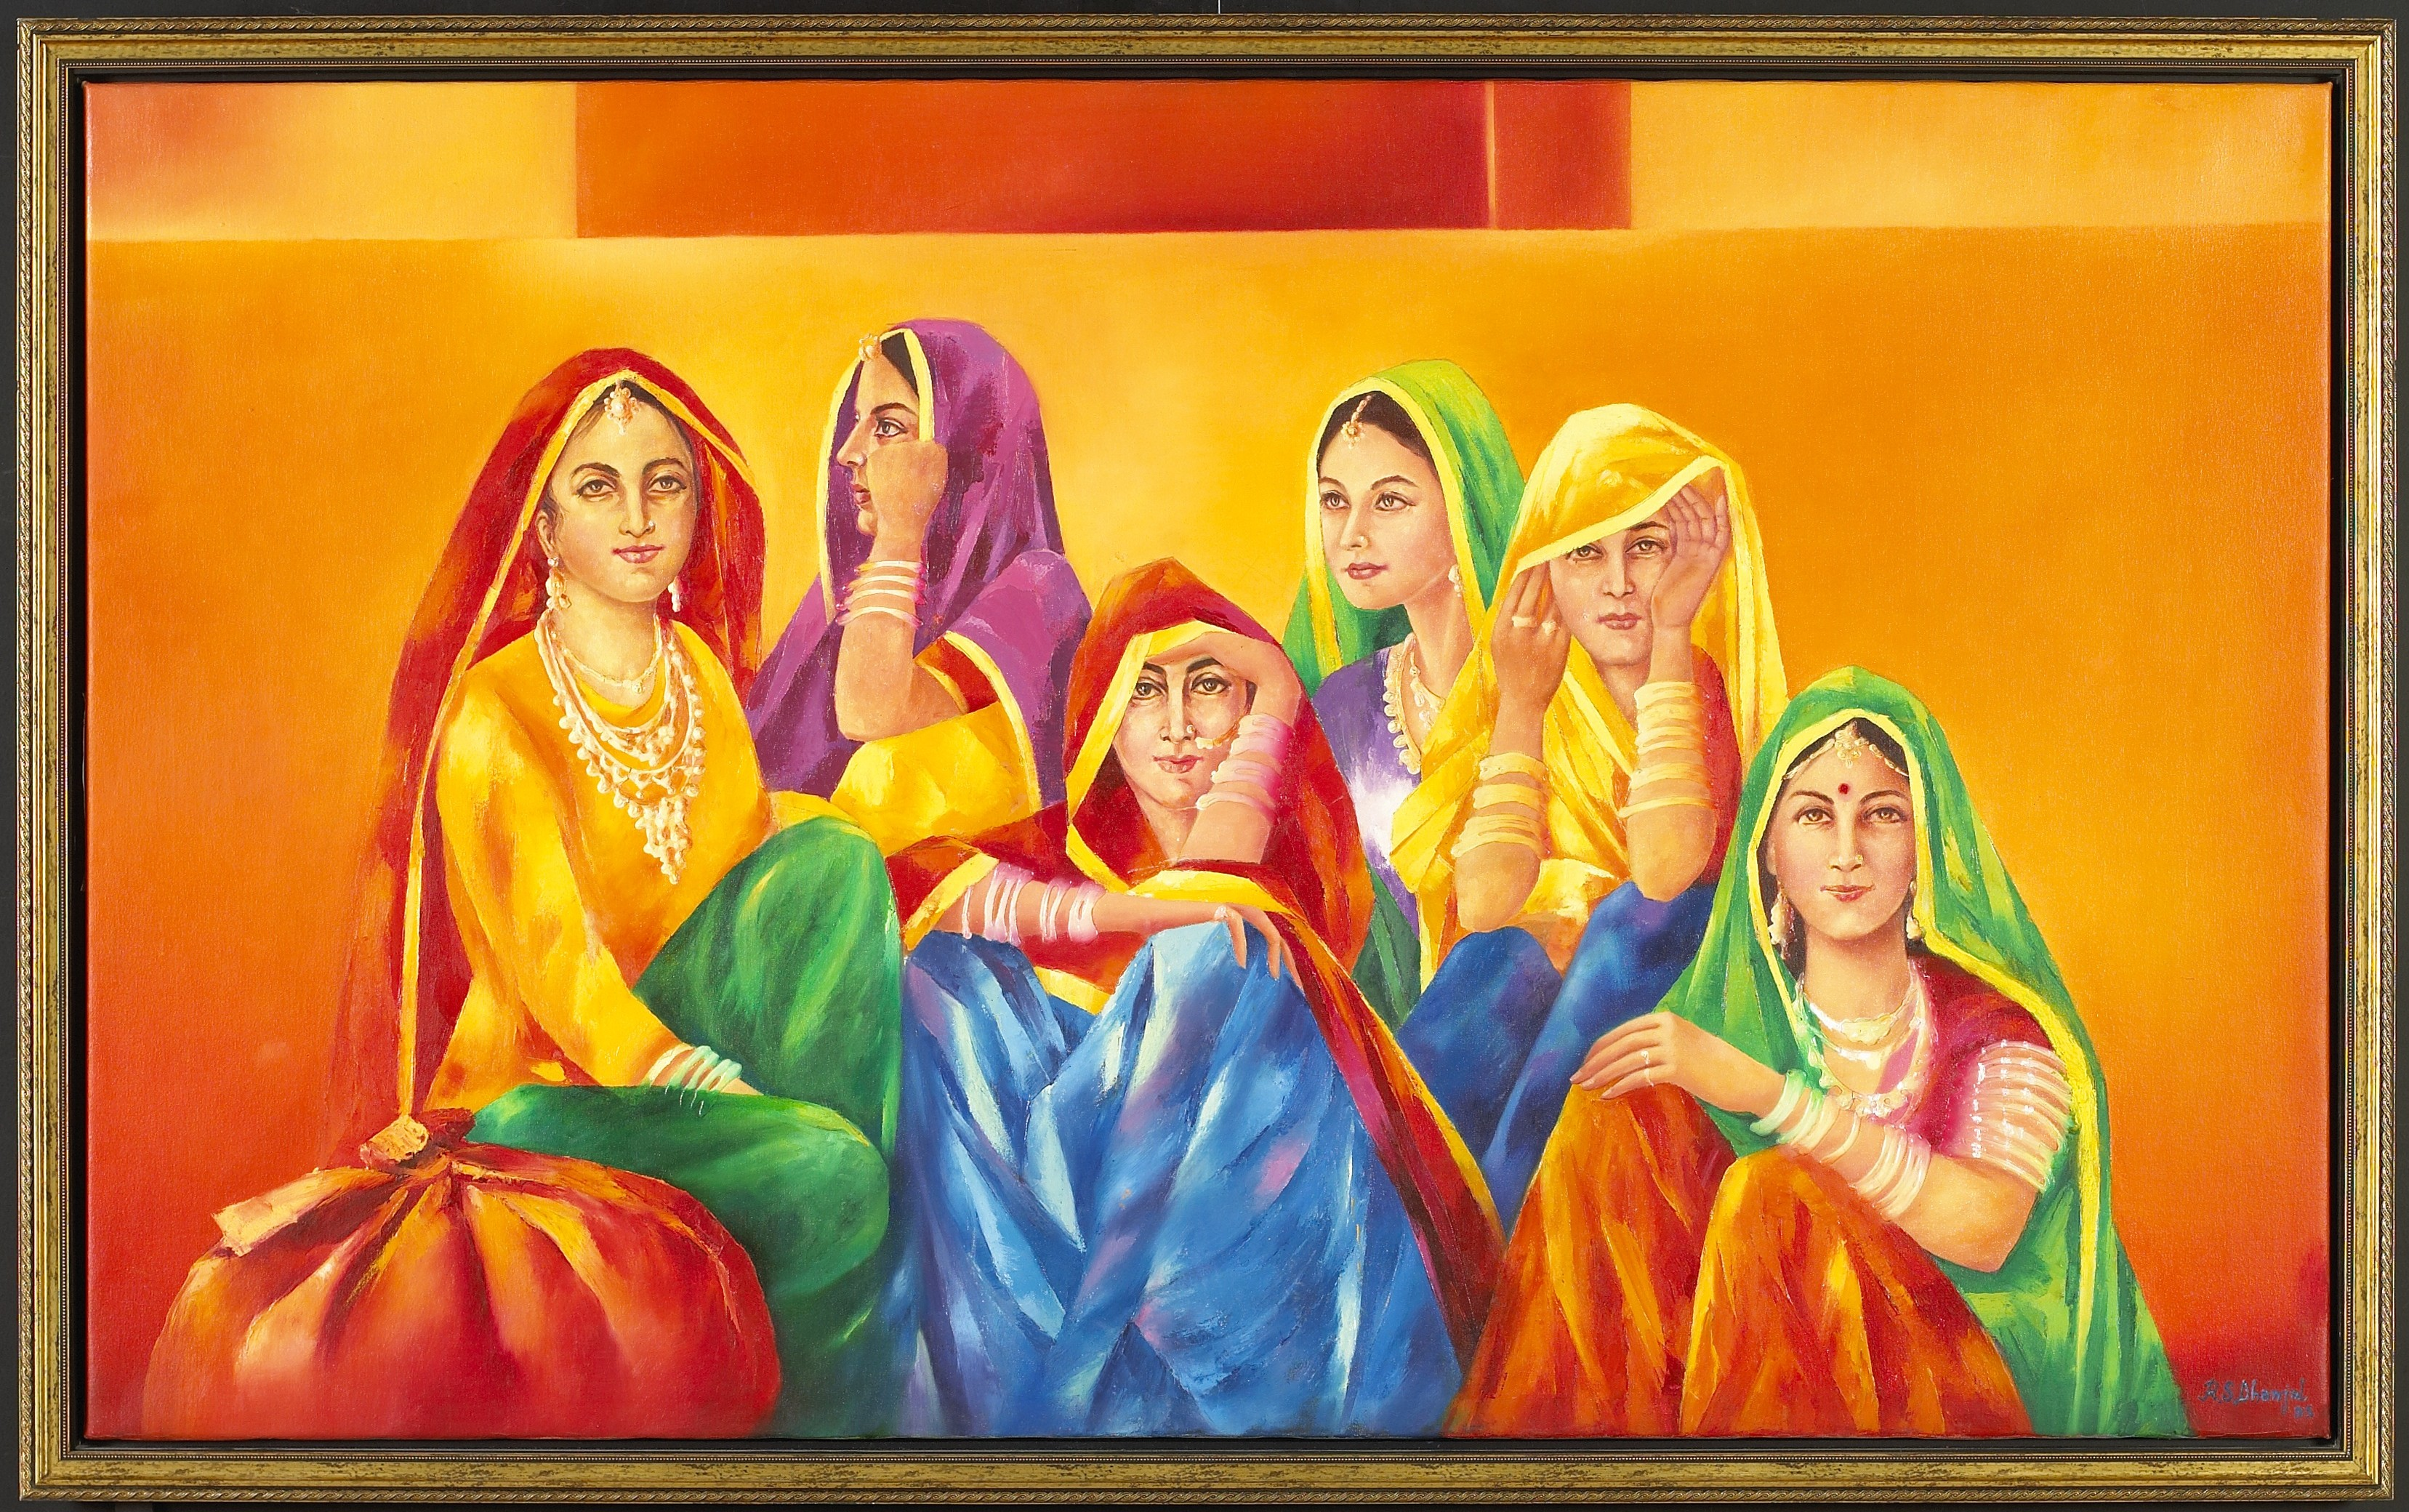 Rajasthani Art 6 Ladies 3x5ft Rustic Gold Frame Museum Style